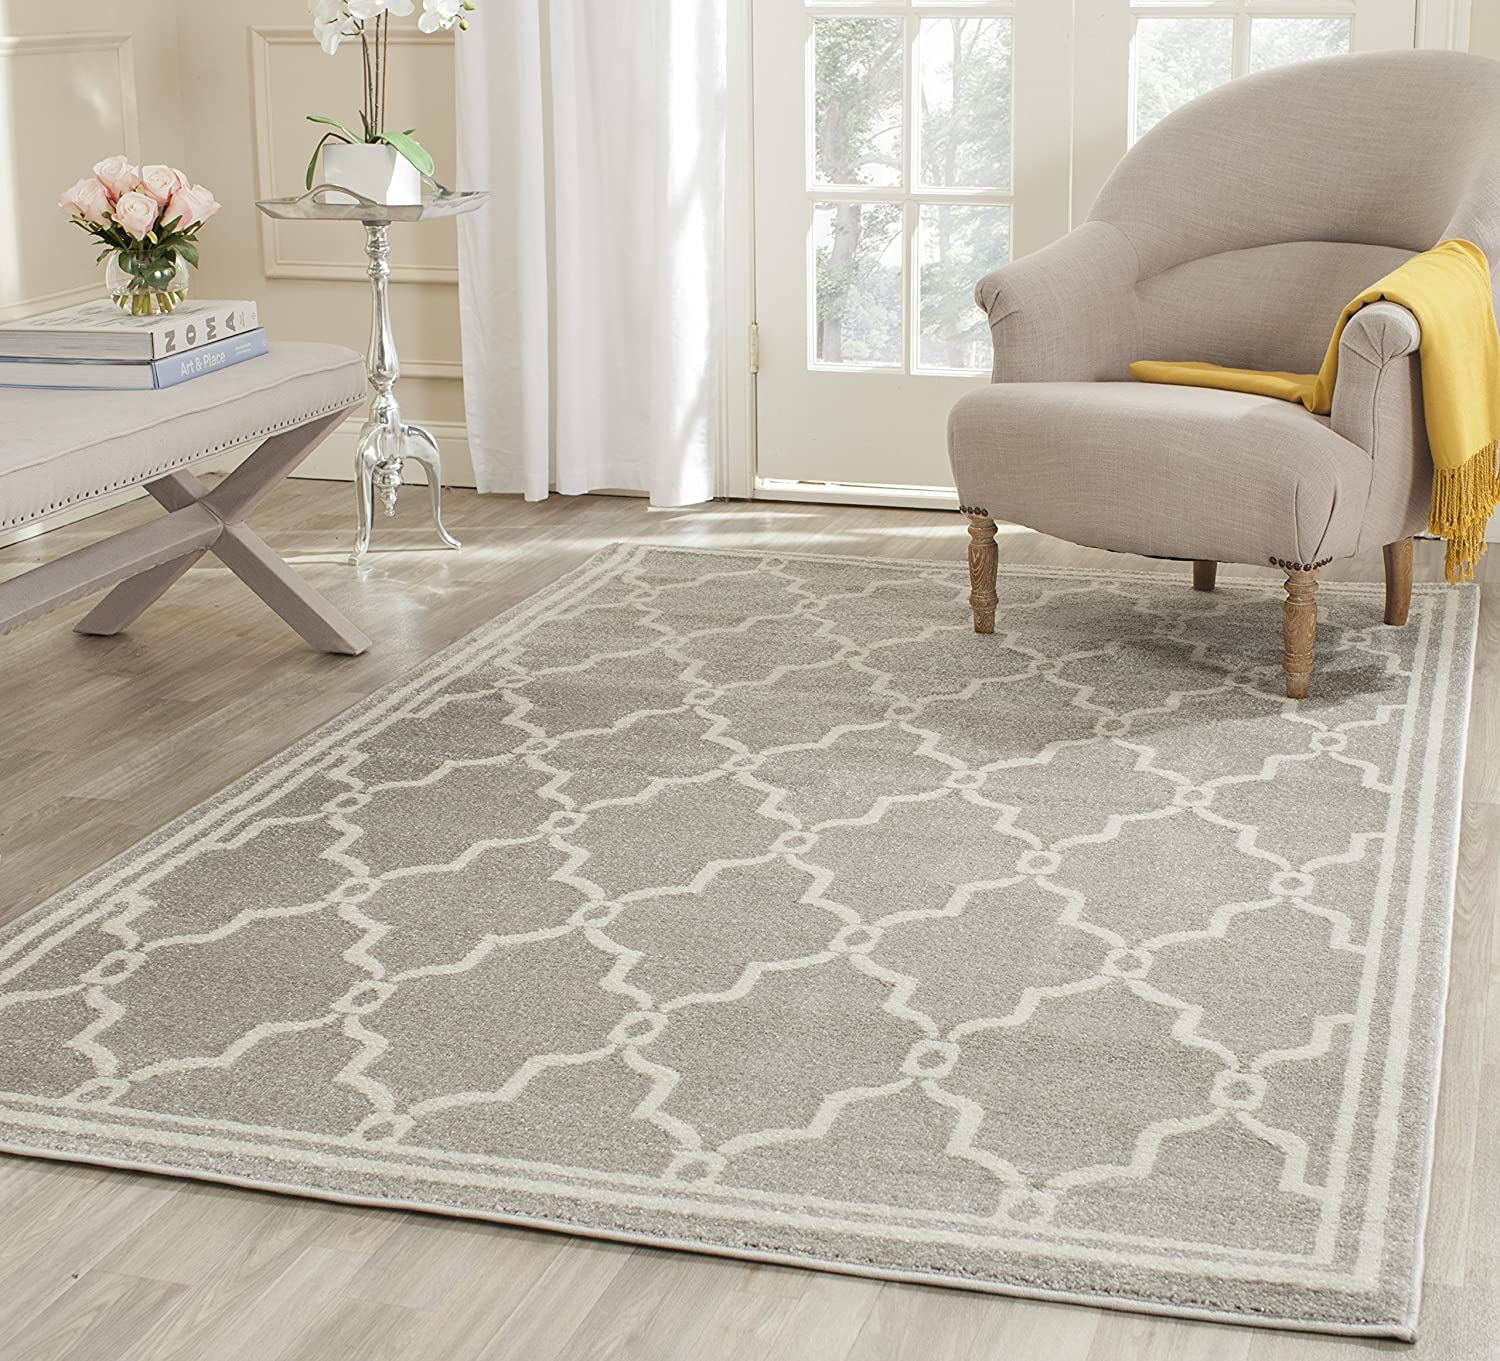 extraordinary white blue grey aqua and rug interior rugs navy stephanegalland com beige home area gray